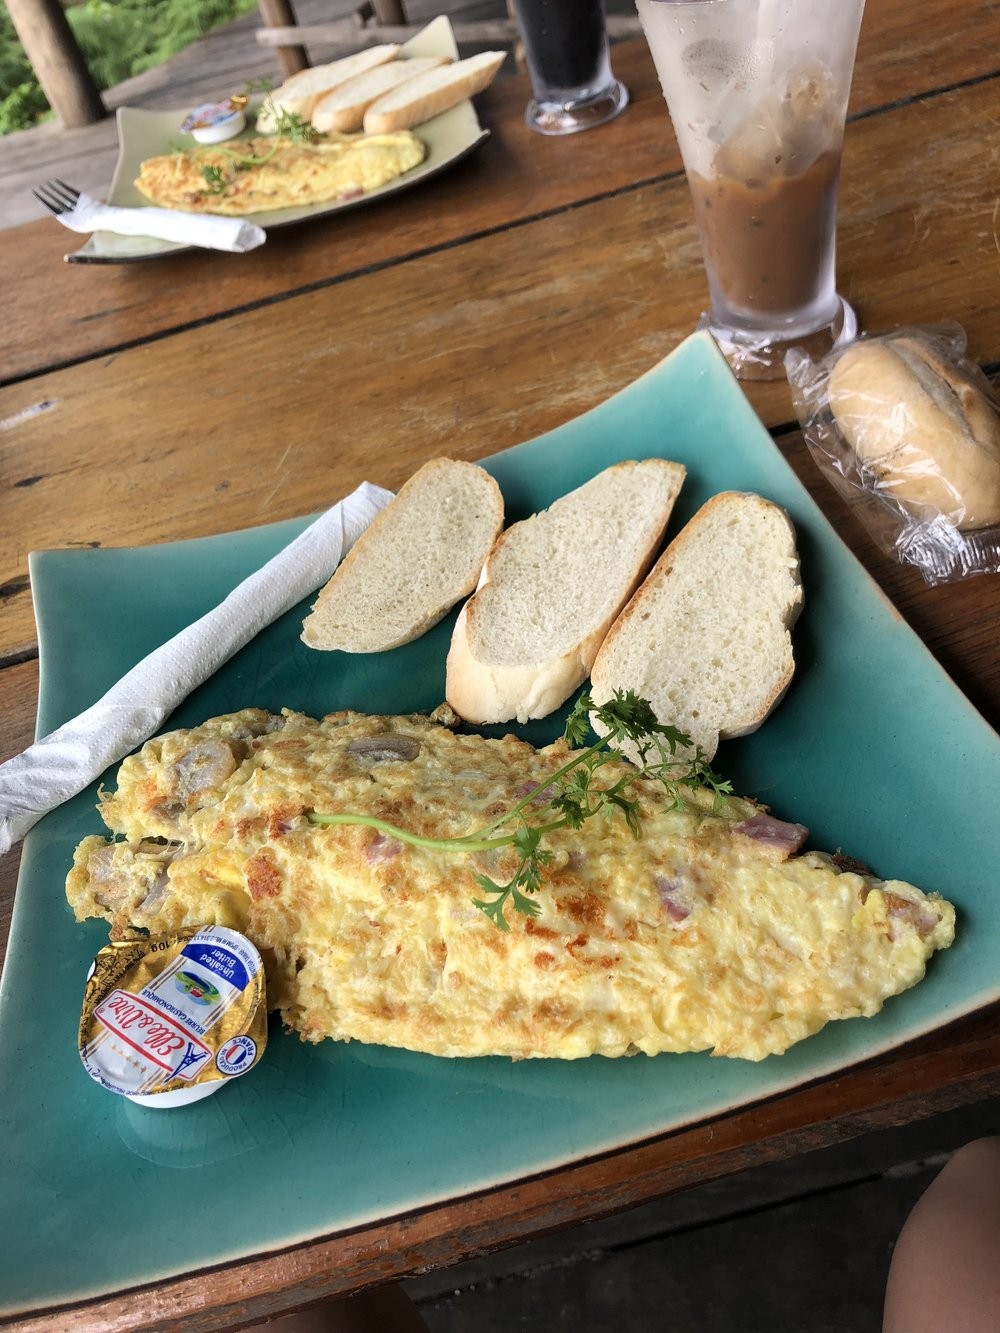 Breakfast omlette at the Mad Monkey - super tasty for being hostel food!